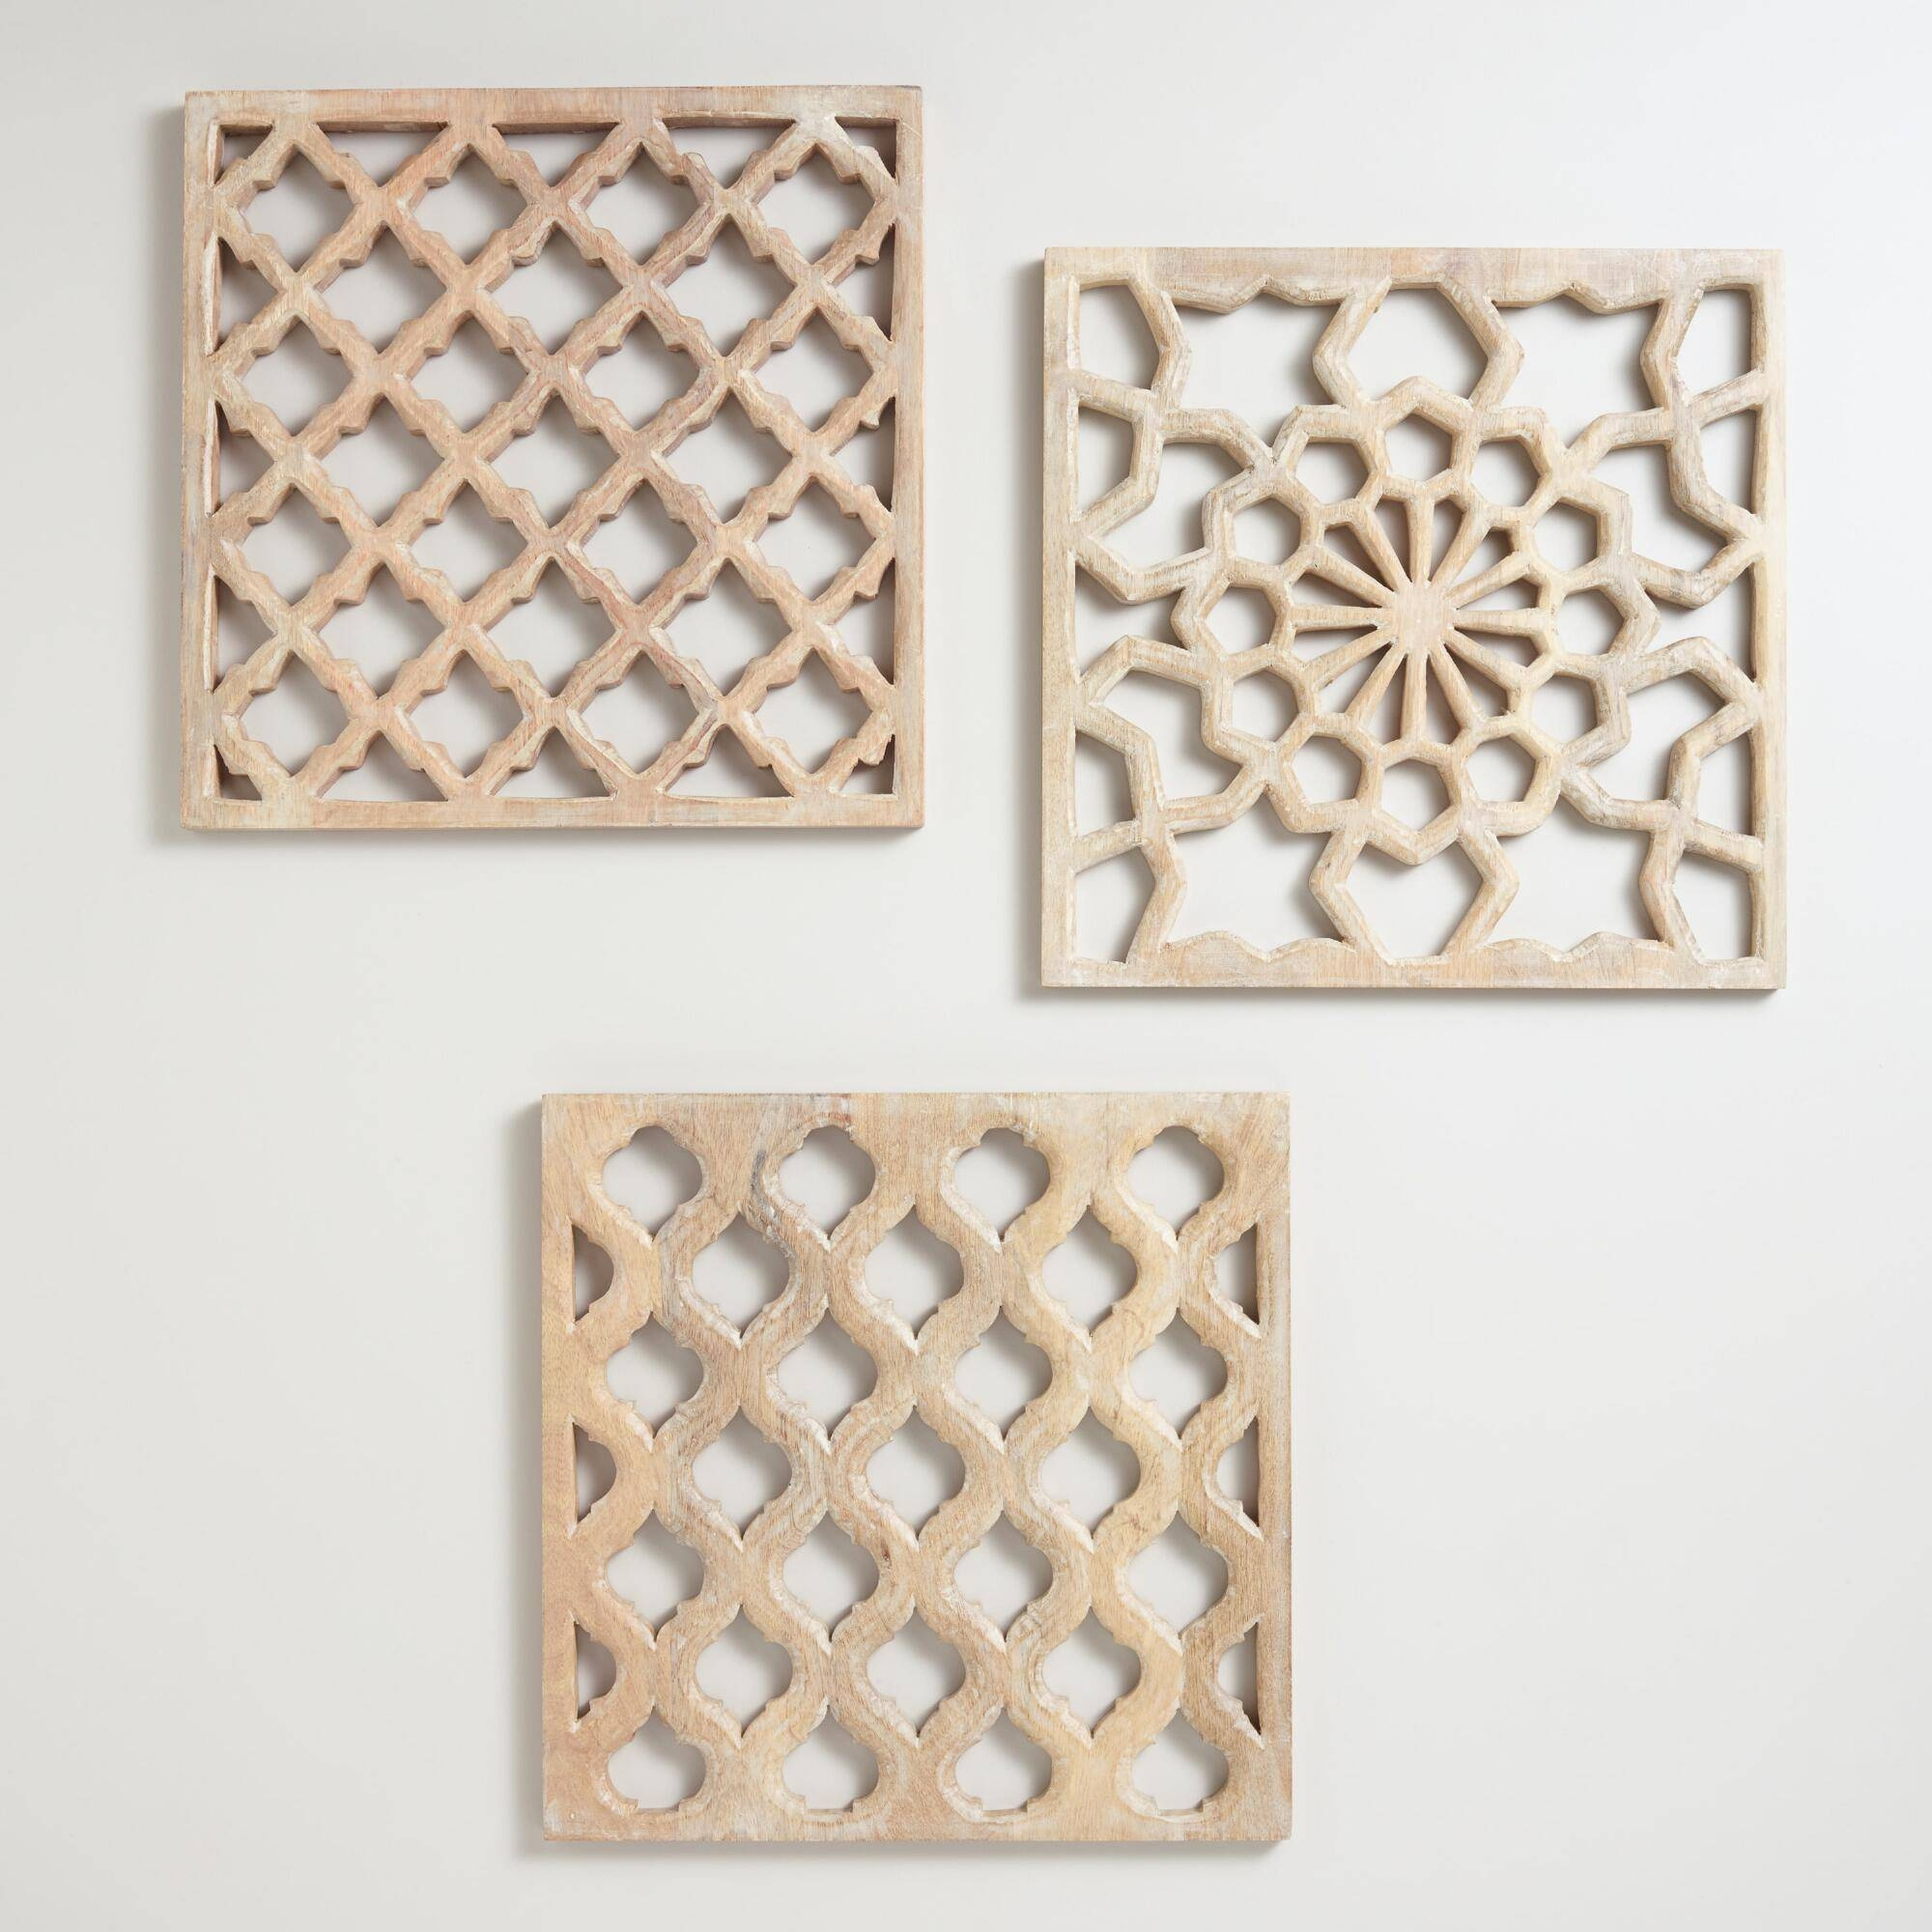 Carved Wooden Wall Panels – Wooden Wall Panels: Way To Enhance The With Regard To Newest Wood Carved Wall Art Panels (View 17 of 25)